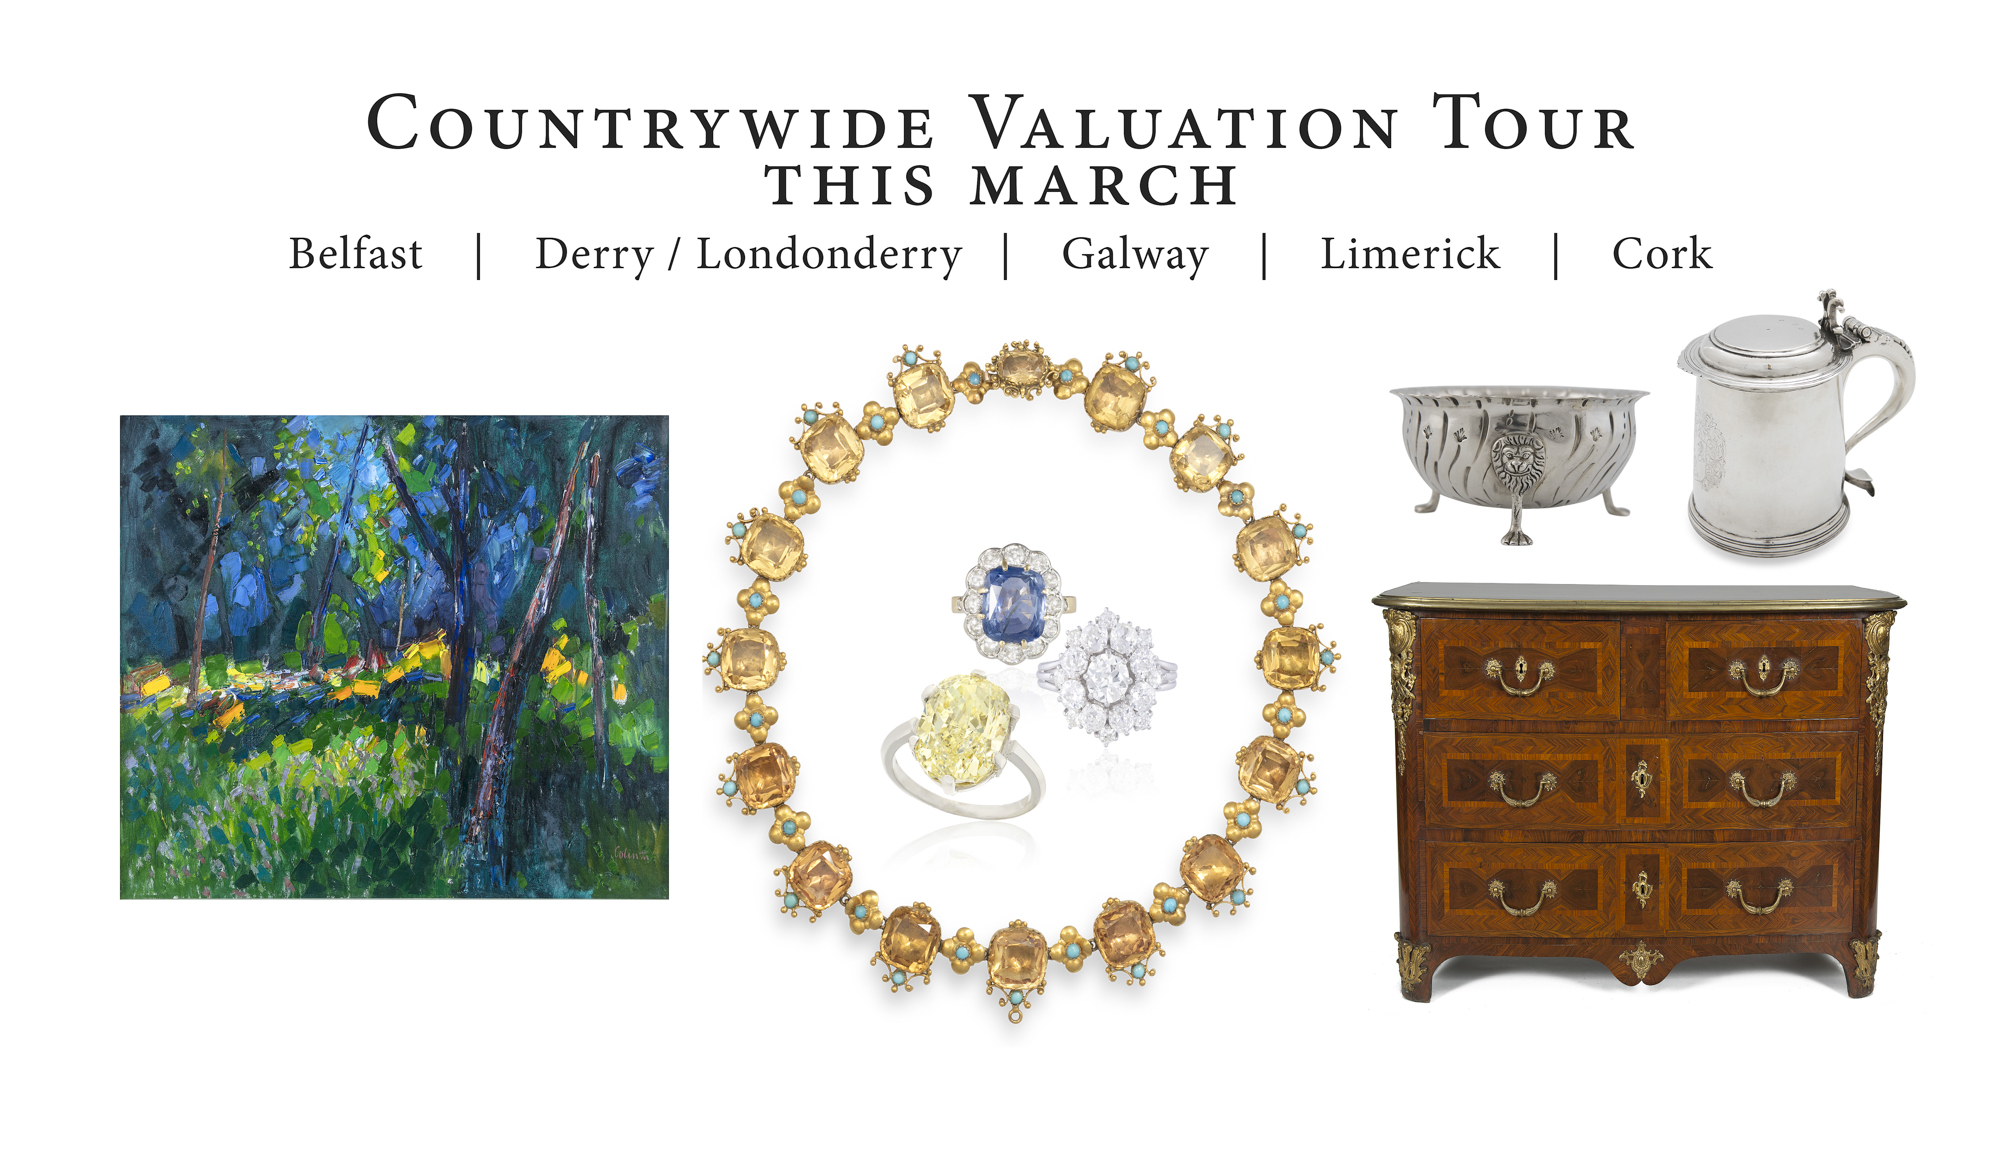 Countrywide Valuation Tour This March